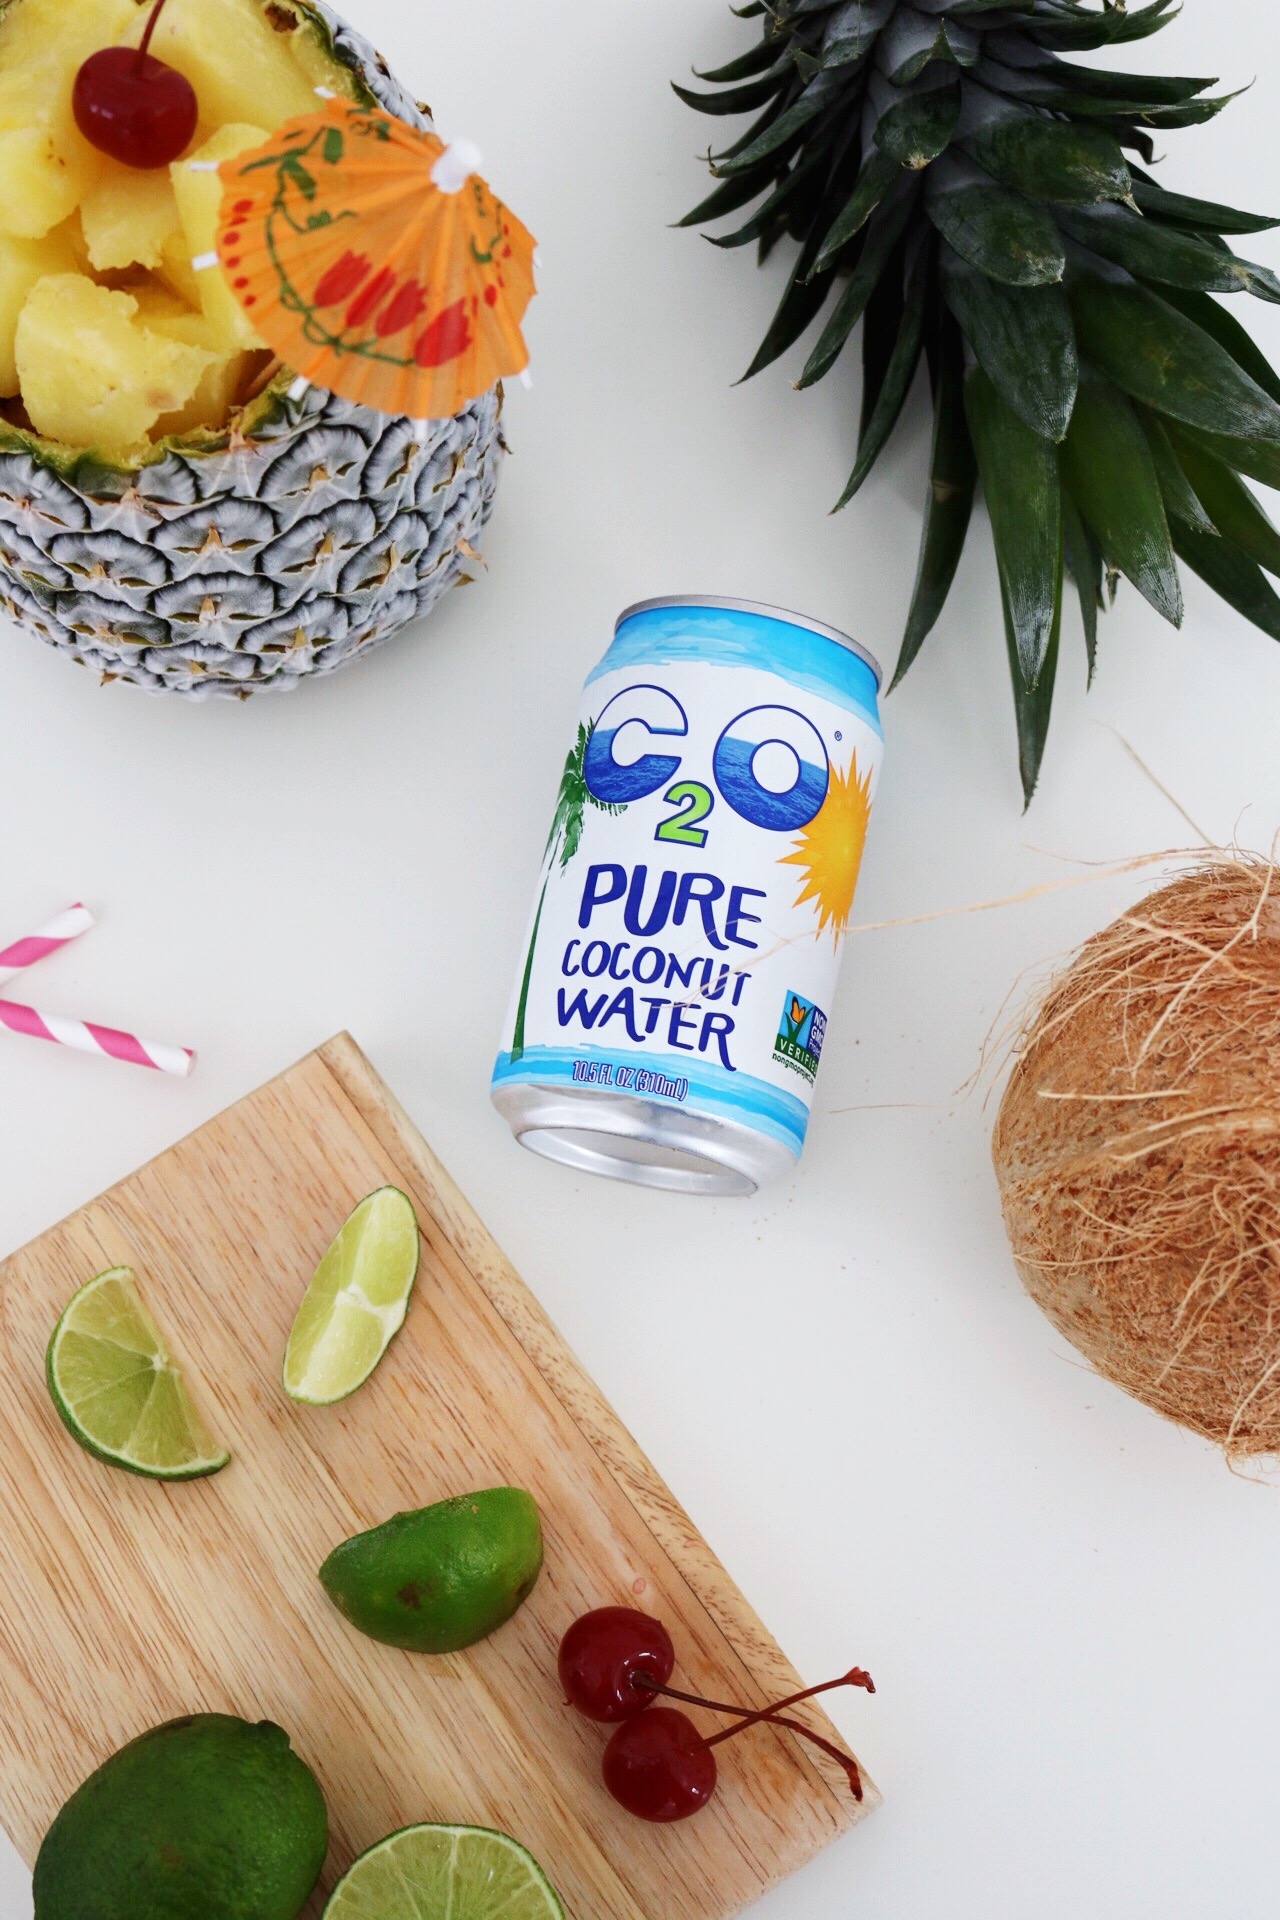 Take a spin on the classic piña colada recipe by adding coconut water instead of coconut milk!